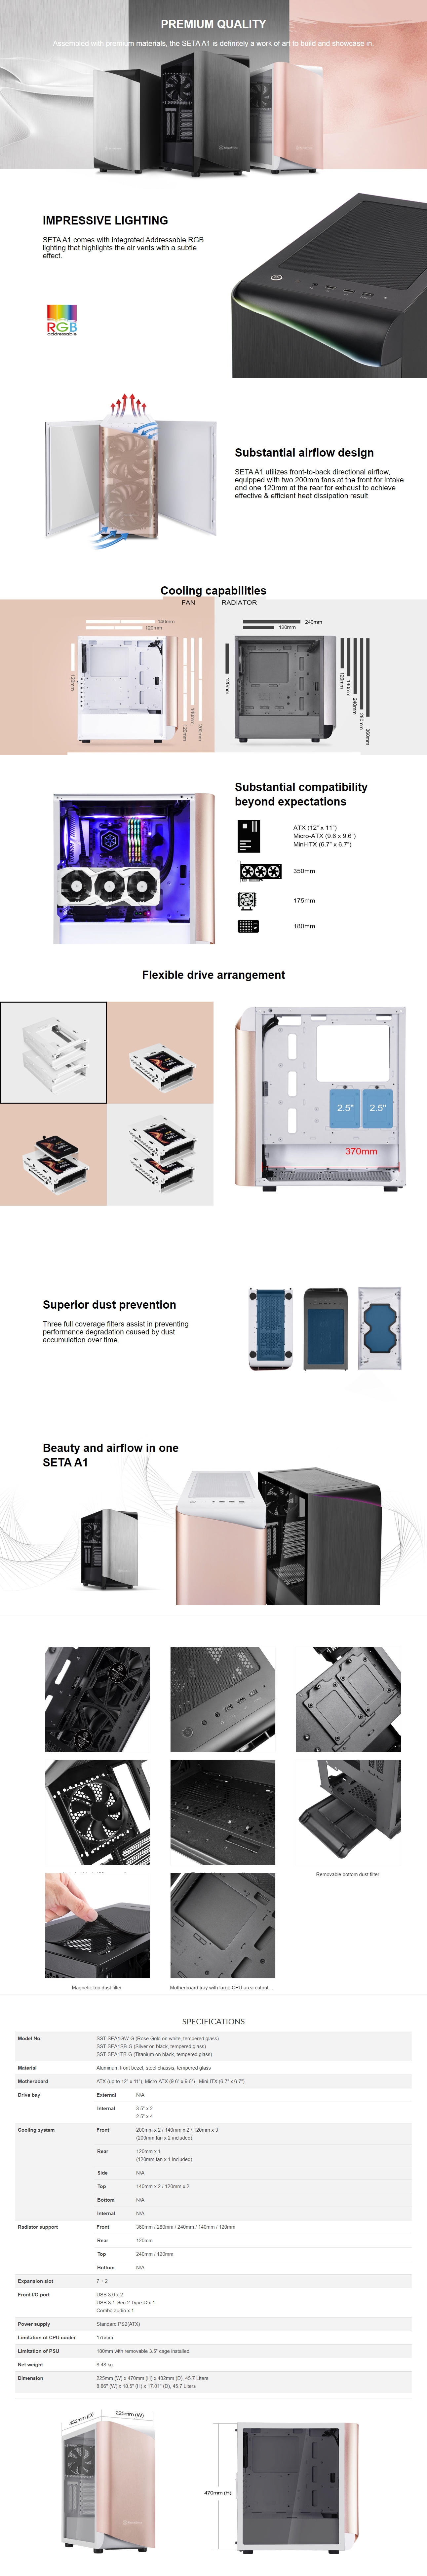 A large marketing image providing additional information about the product SilverStone SETA A1 Titanium Mid Tower Case w/Tempered Glass Side Panel - Additional alt info not provided